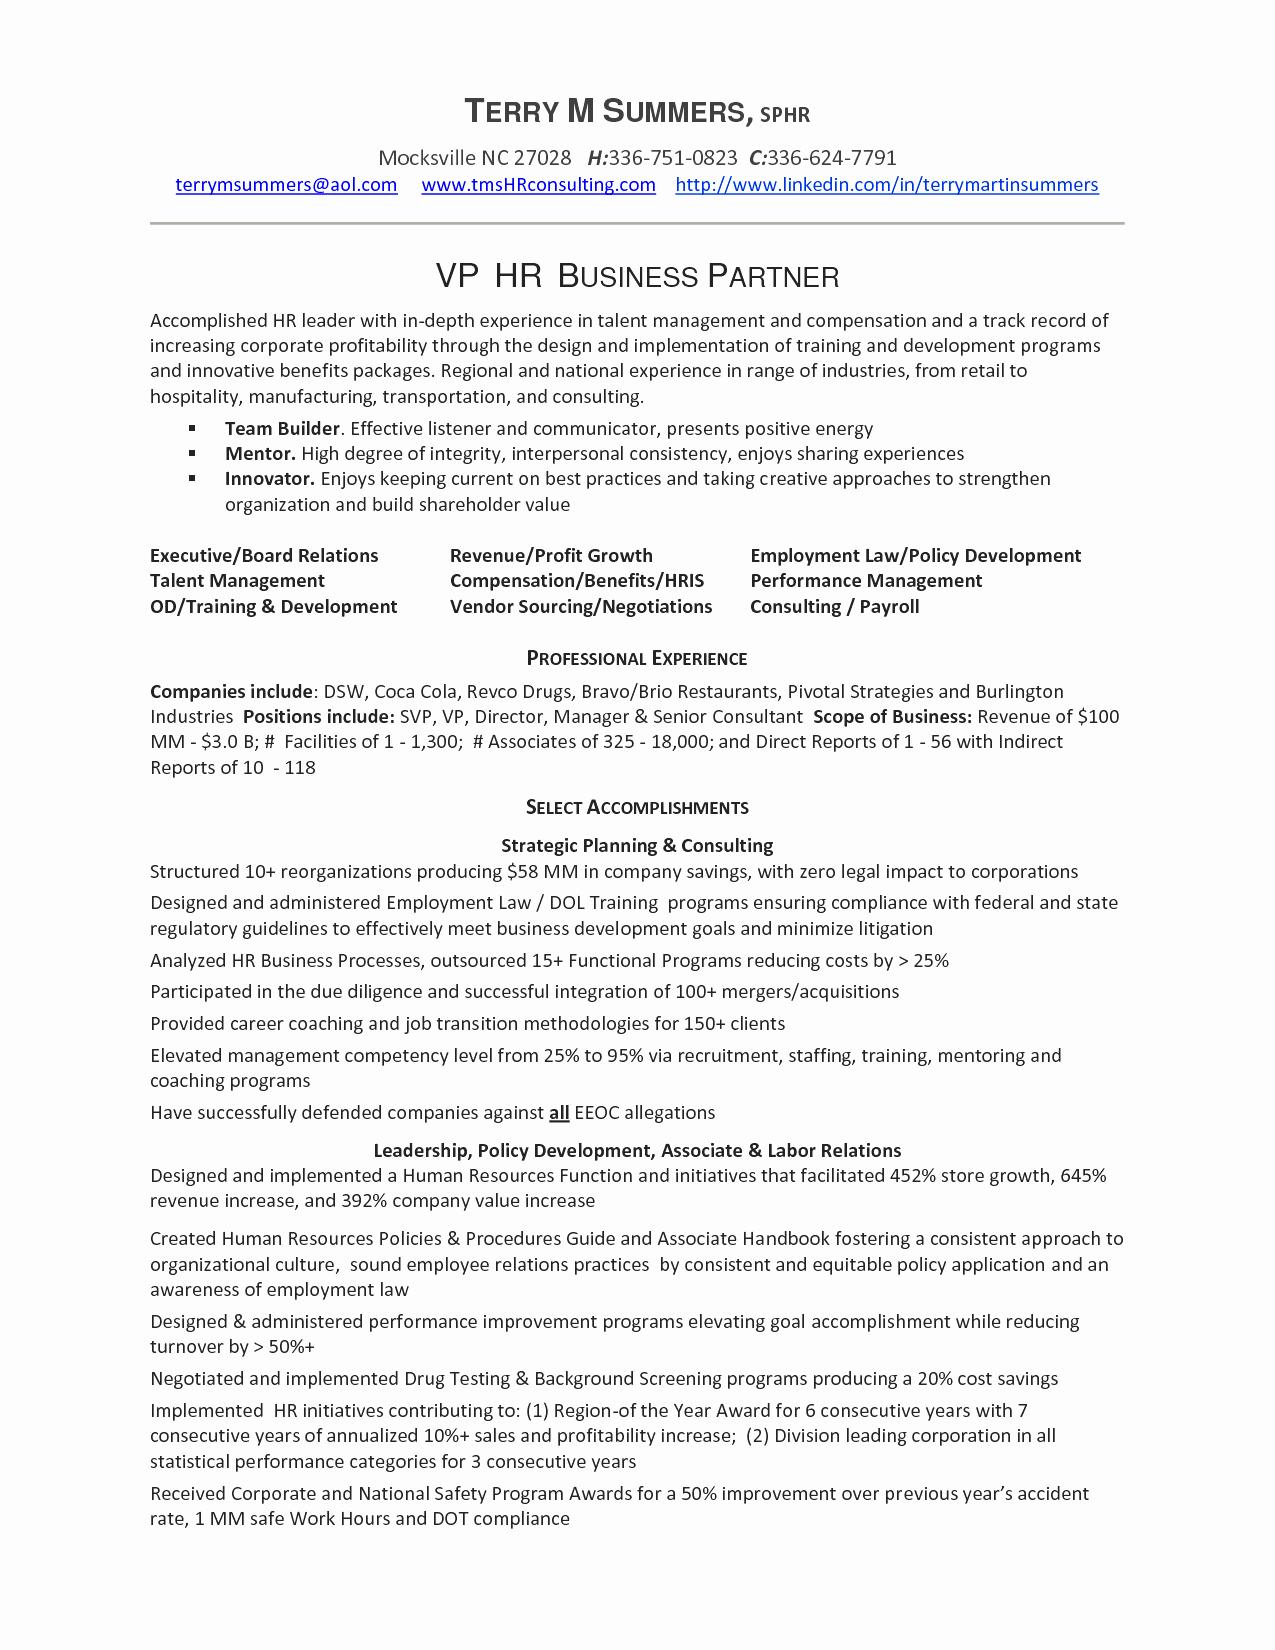 Professional Accountant Resume - Objective for Resume Bookkeeper Elegant Accounting Resume Samples